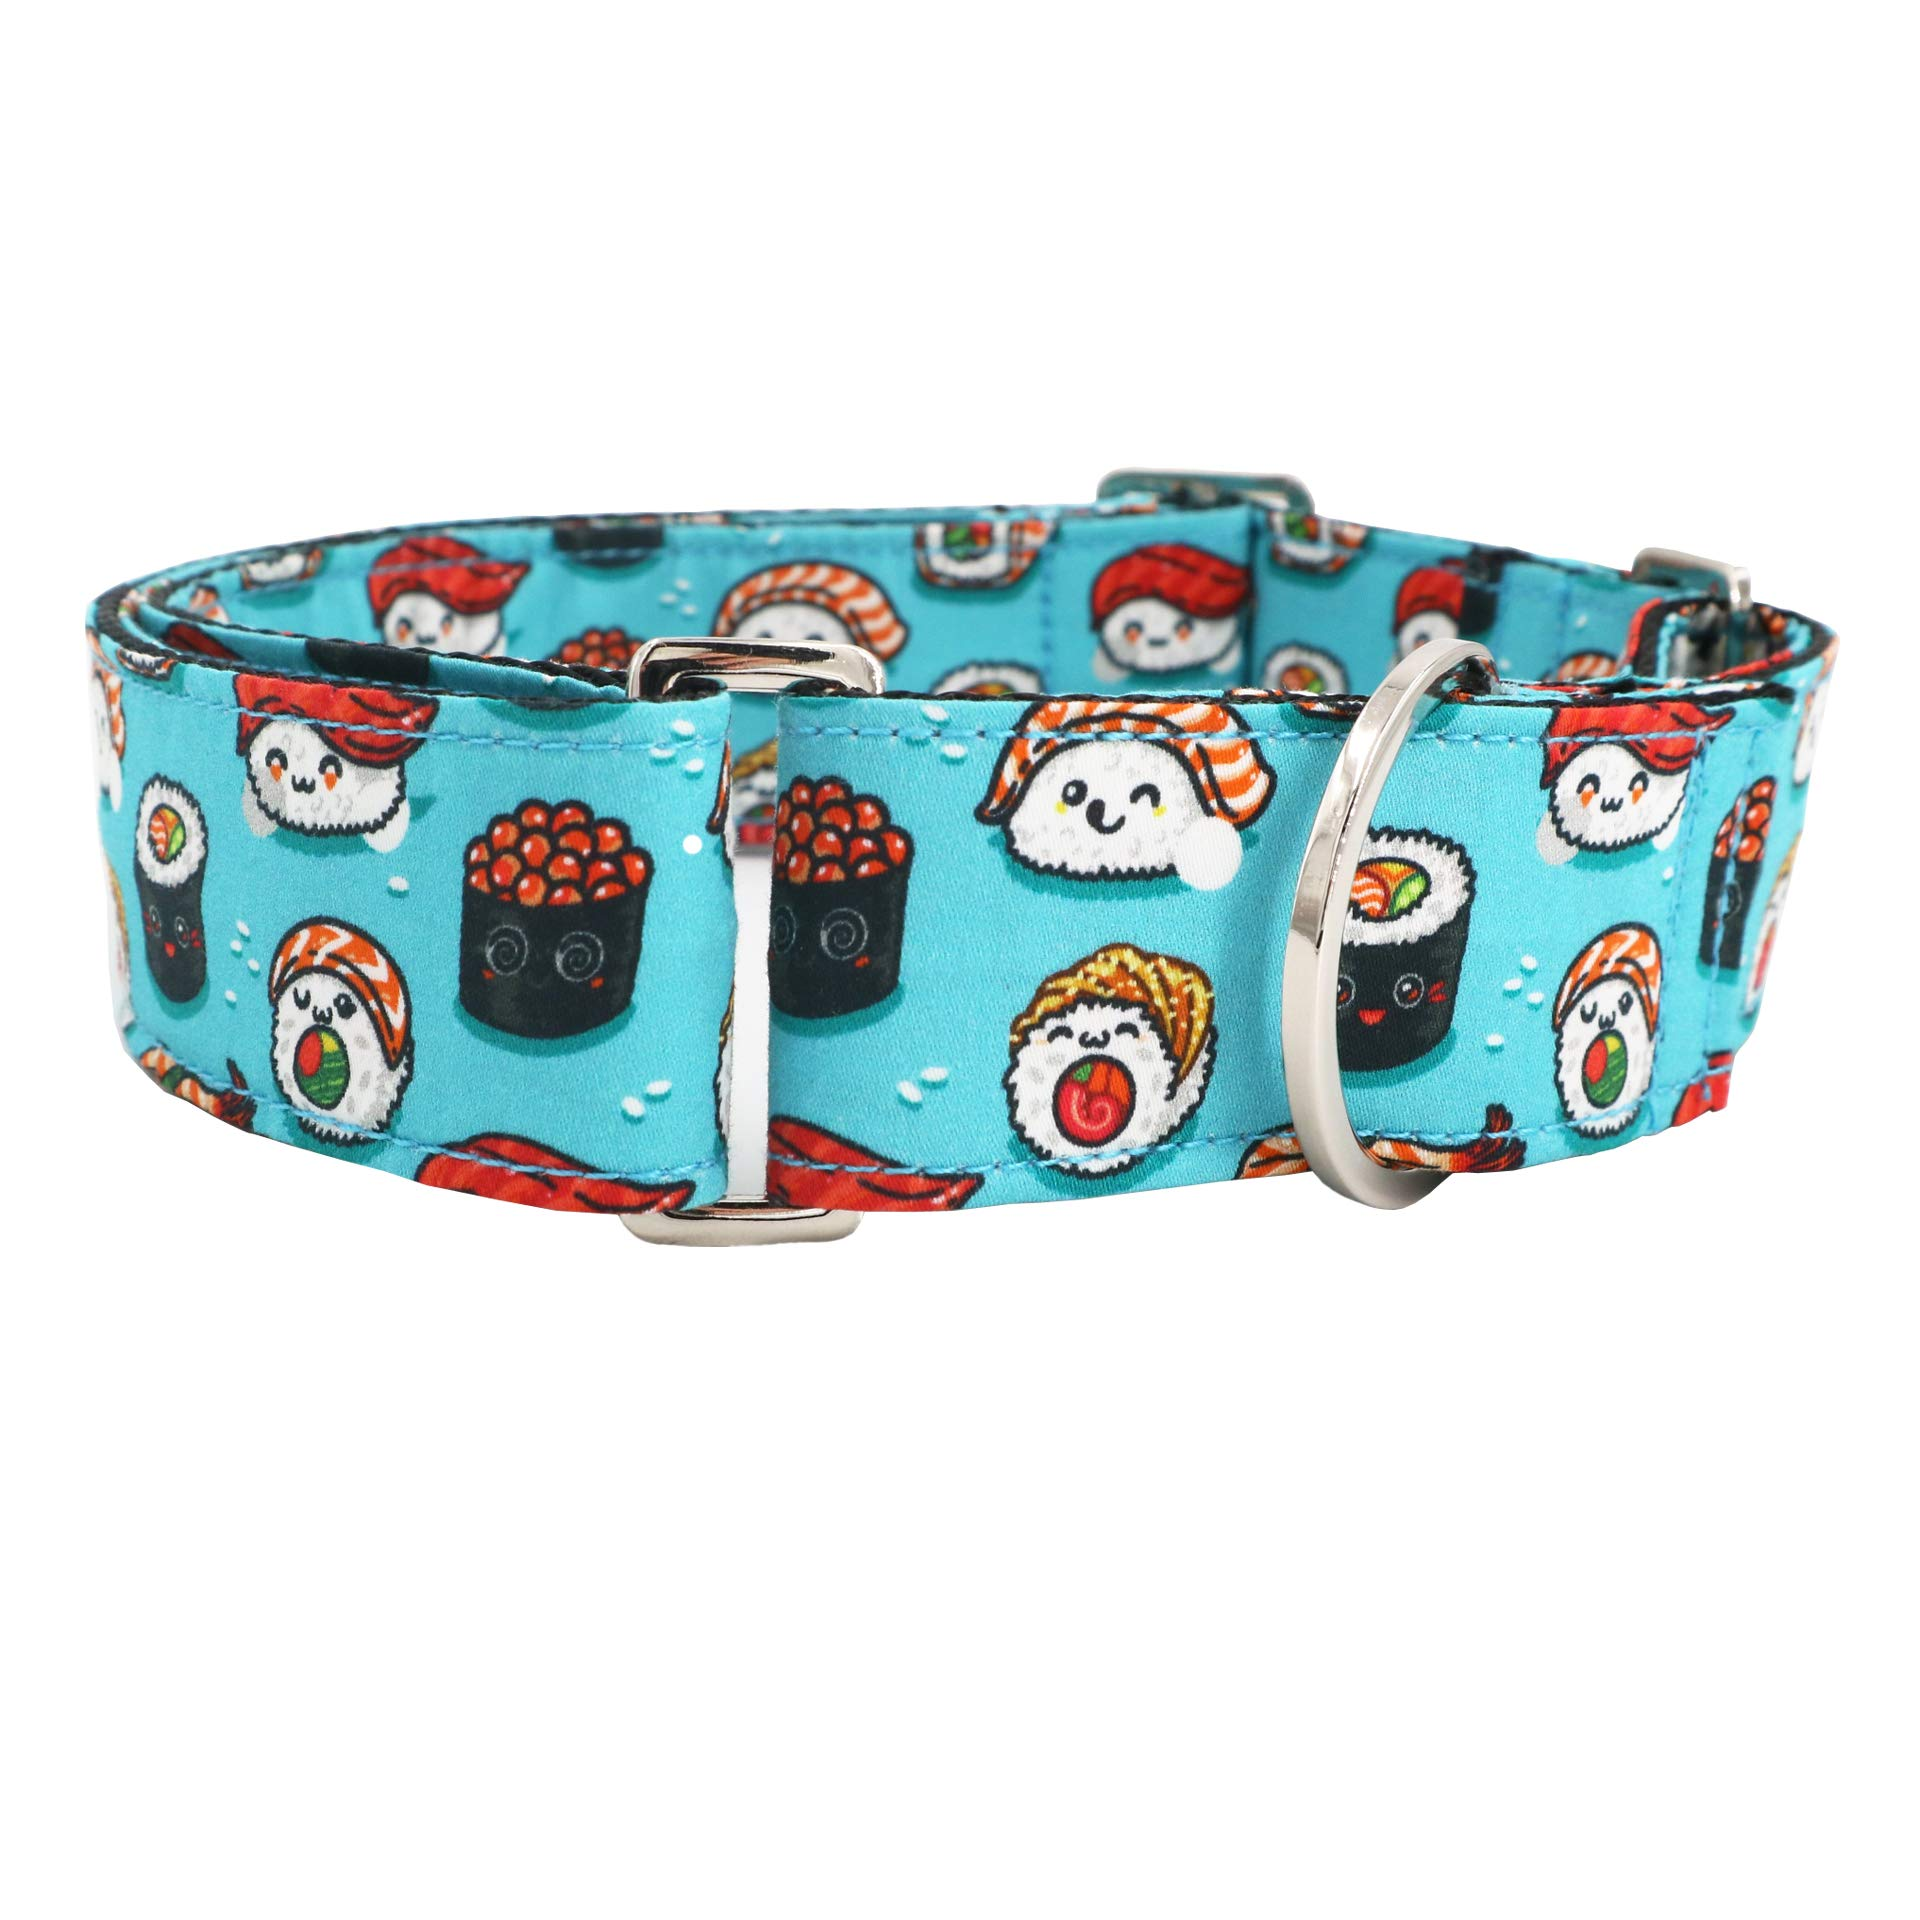 Pet Safety Training Martingale Dog Collar No Buckle Greyhournd Martingale Collar Handmade Adjustable Collars